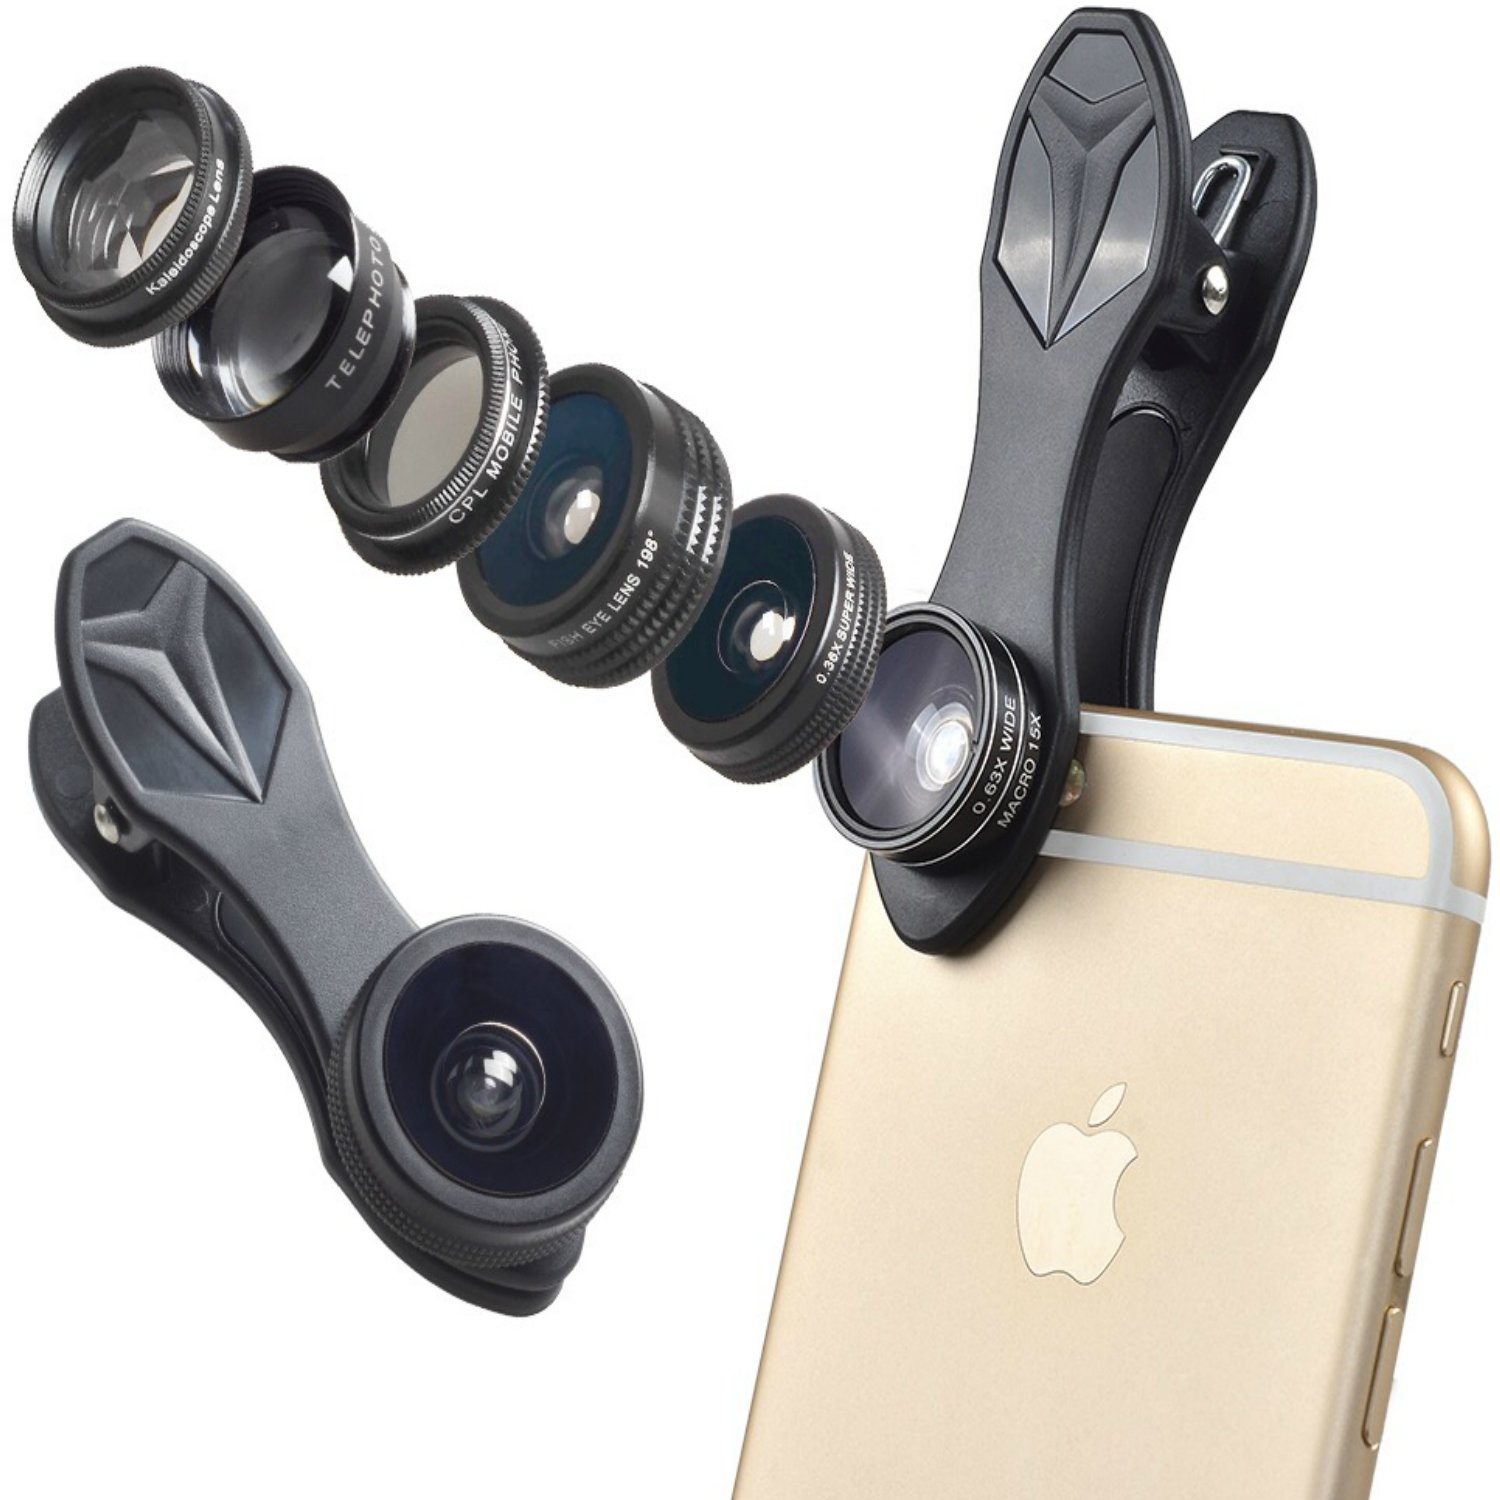 Photo lenses for iPhone